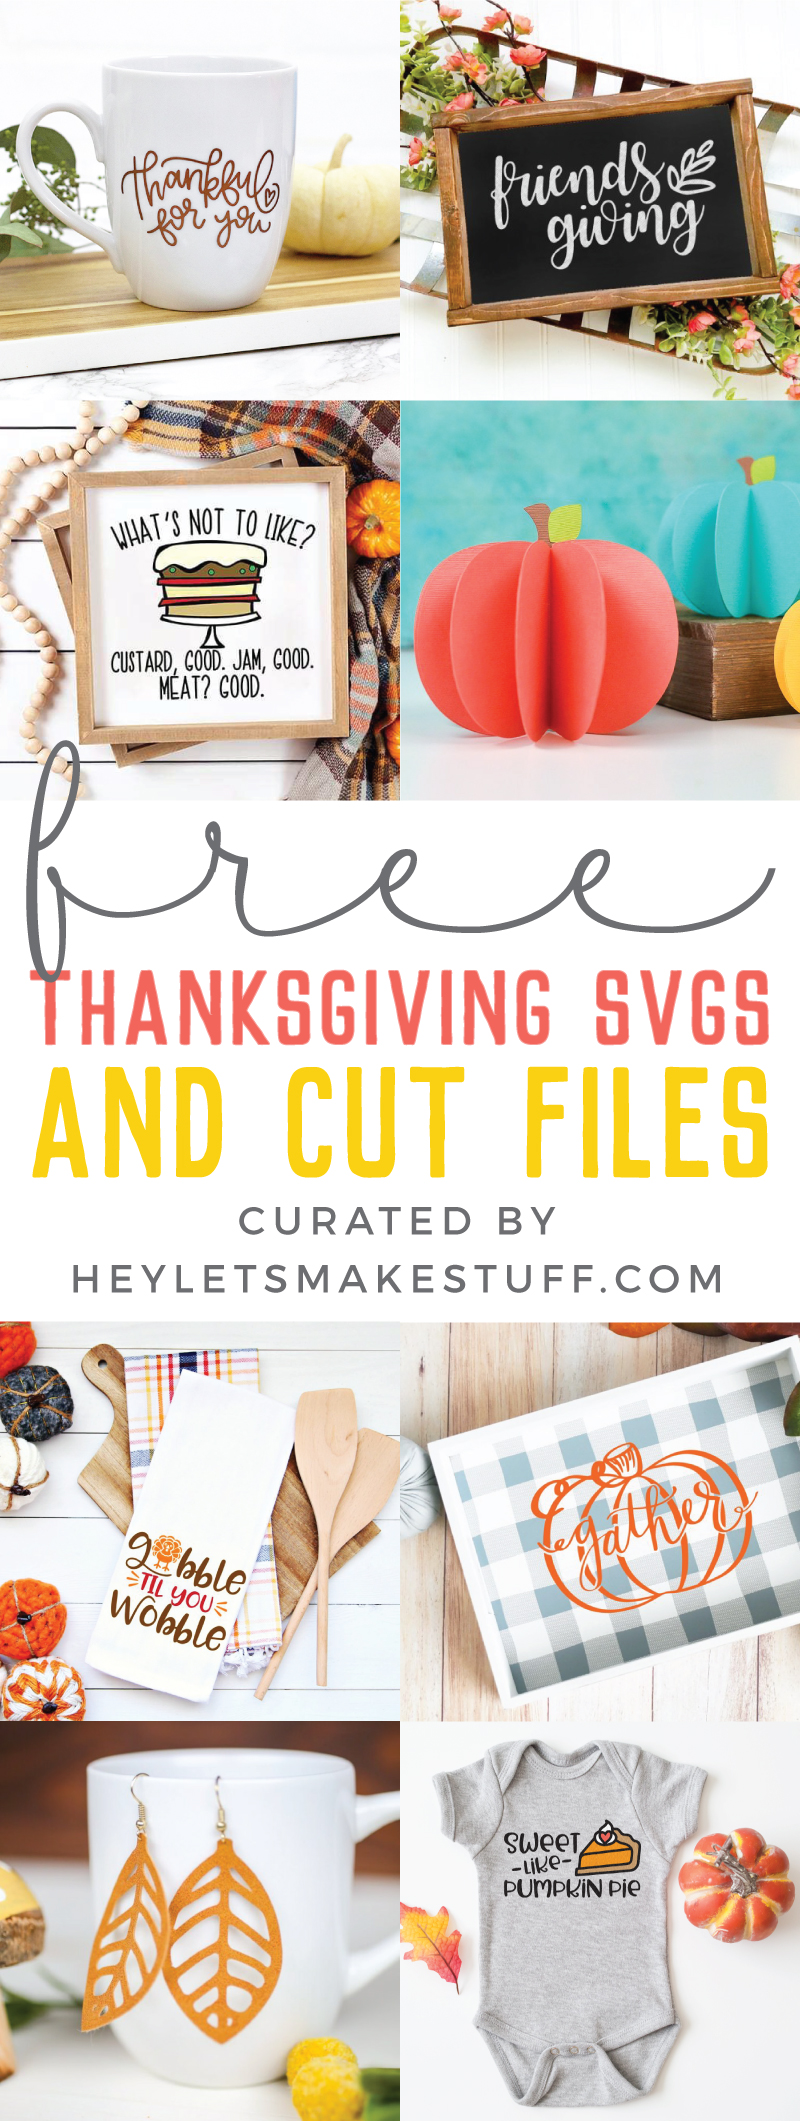 Pumpkins, leaves, turkeys and more! Fall is upon us, let the cooler weather and these Free SVG Files for Fall and Thanksgiving inspire you to get crafty! via @heyletsmakestuf